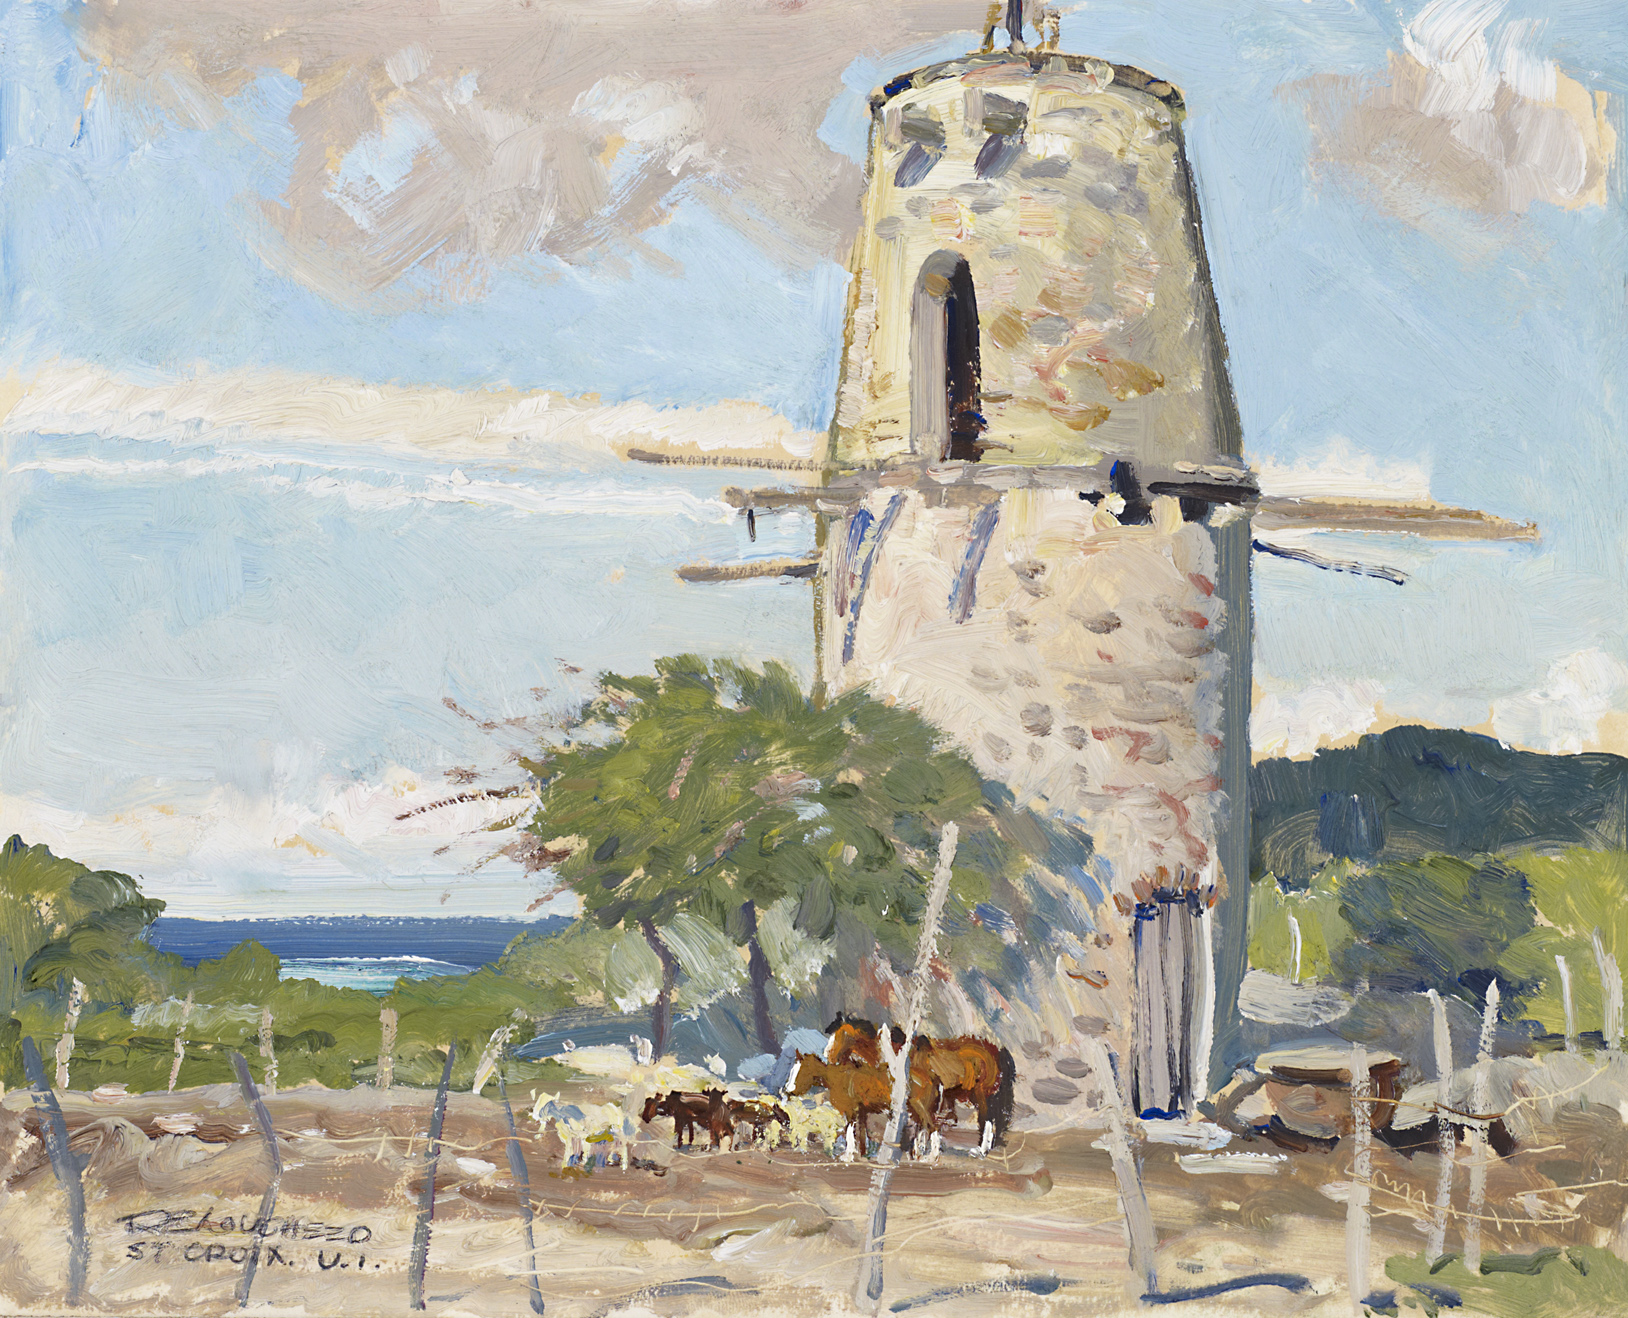 Mill, St. Croix by  Robert Lougheed - Masterpiece Online